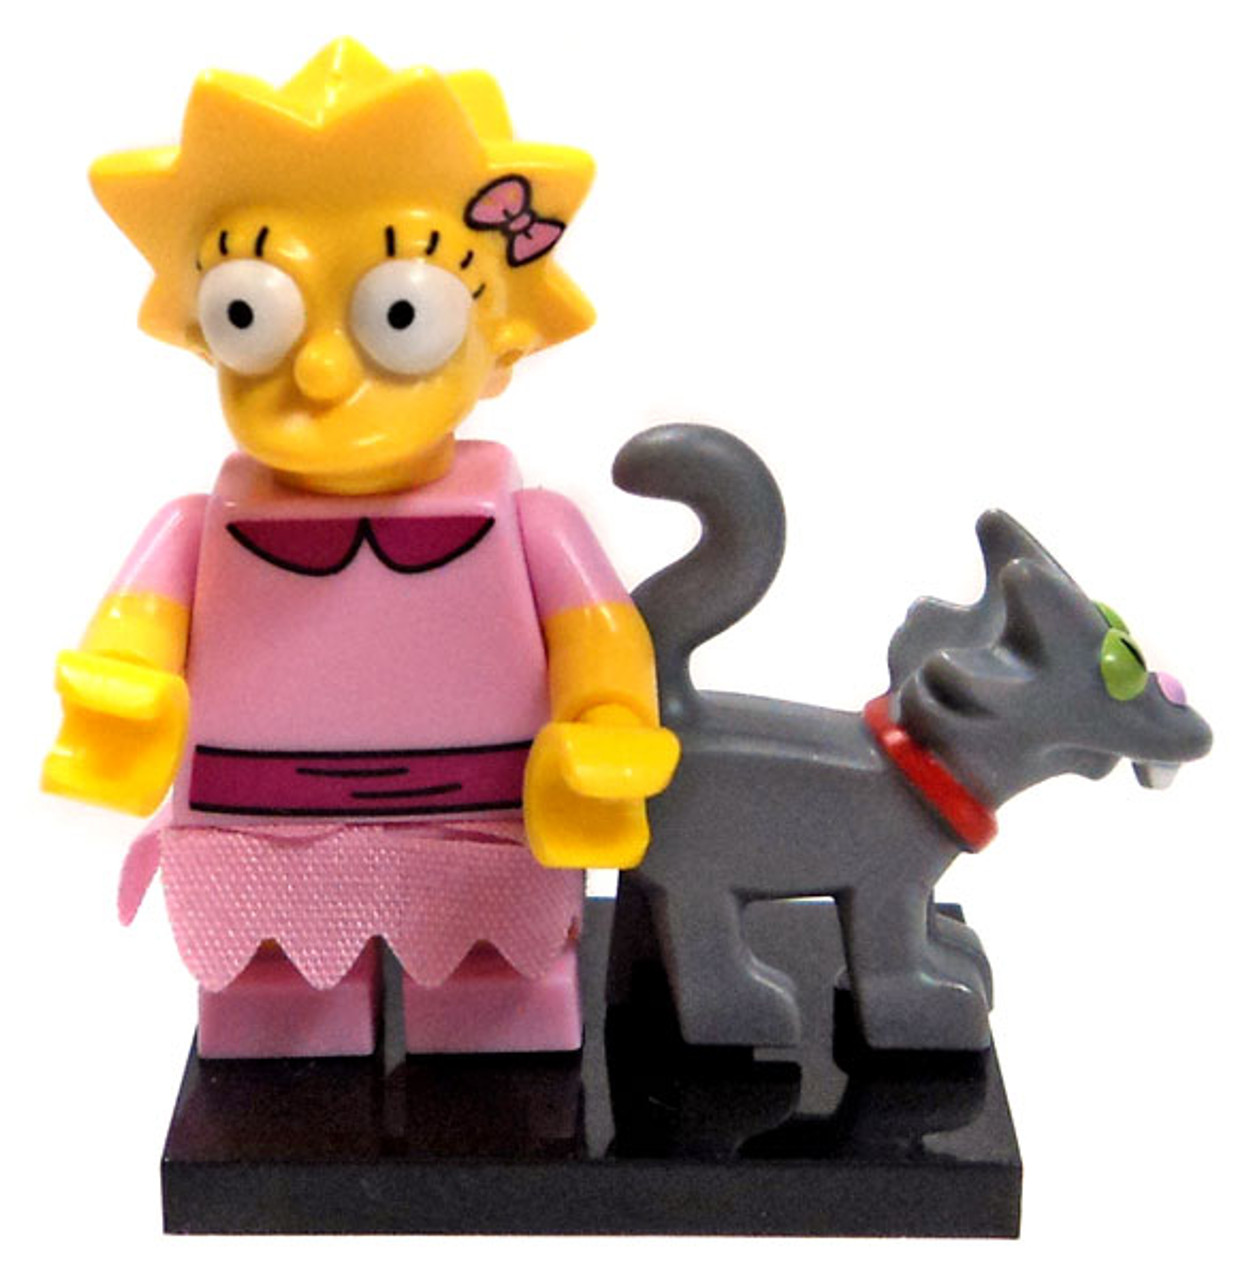 LEGO SERIES 1 SIMPSONS LISA MINT CONDITION